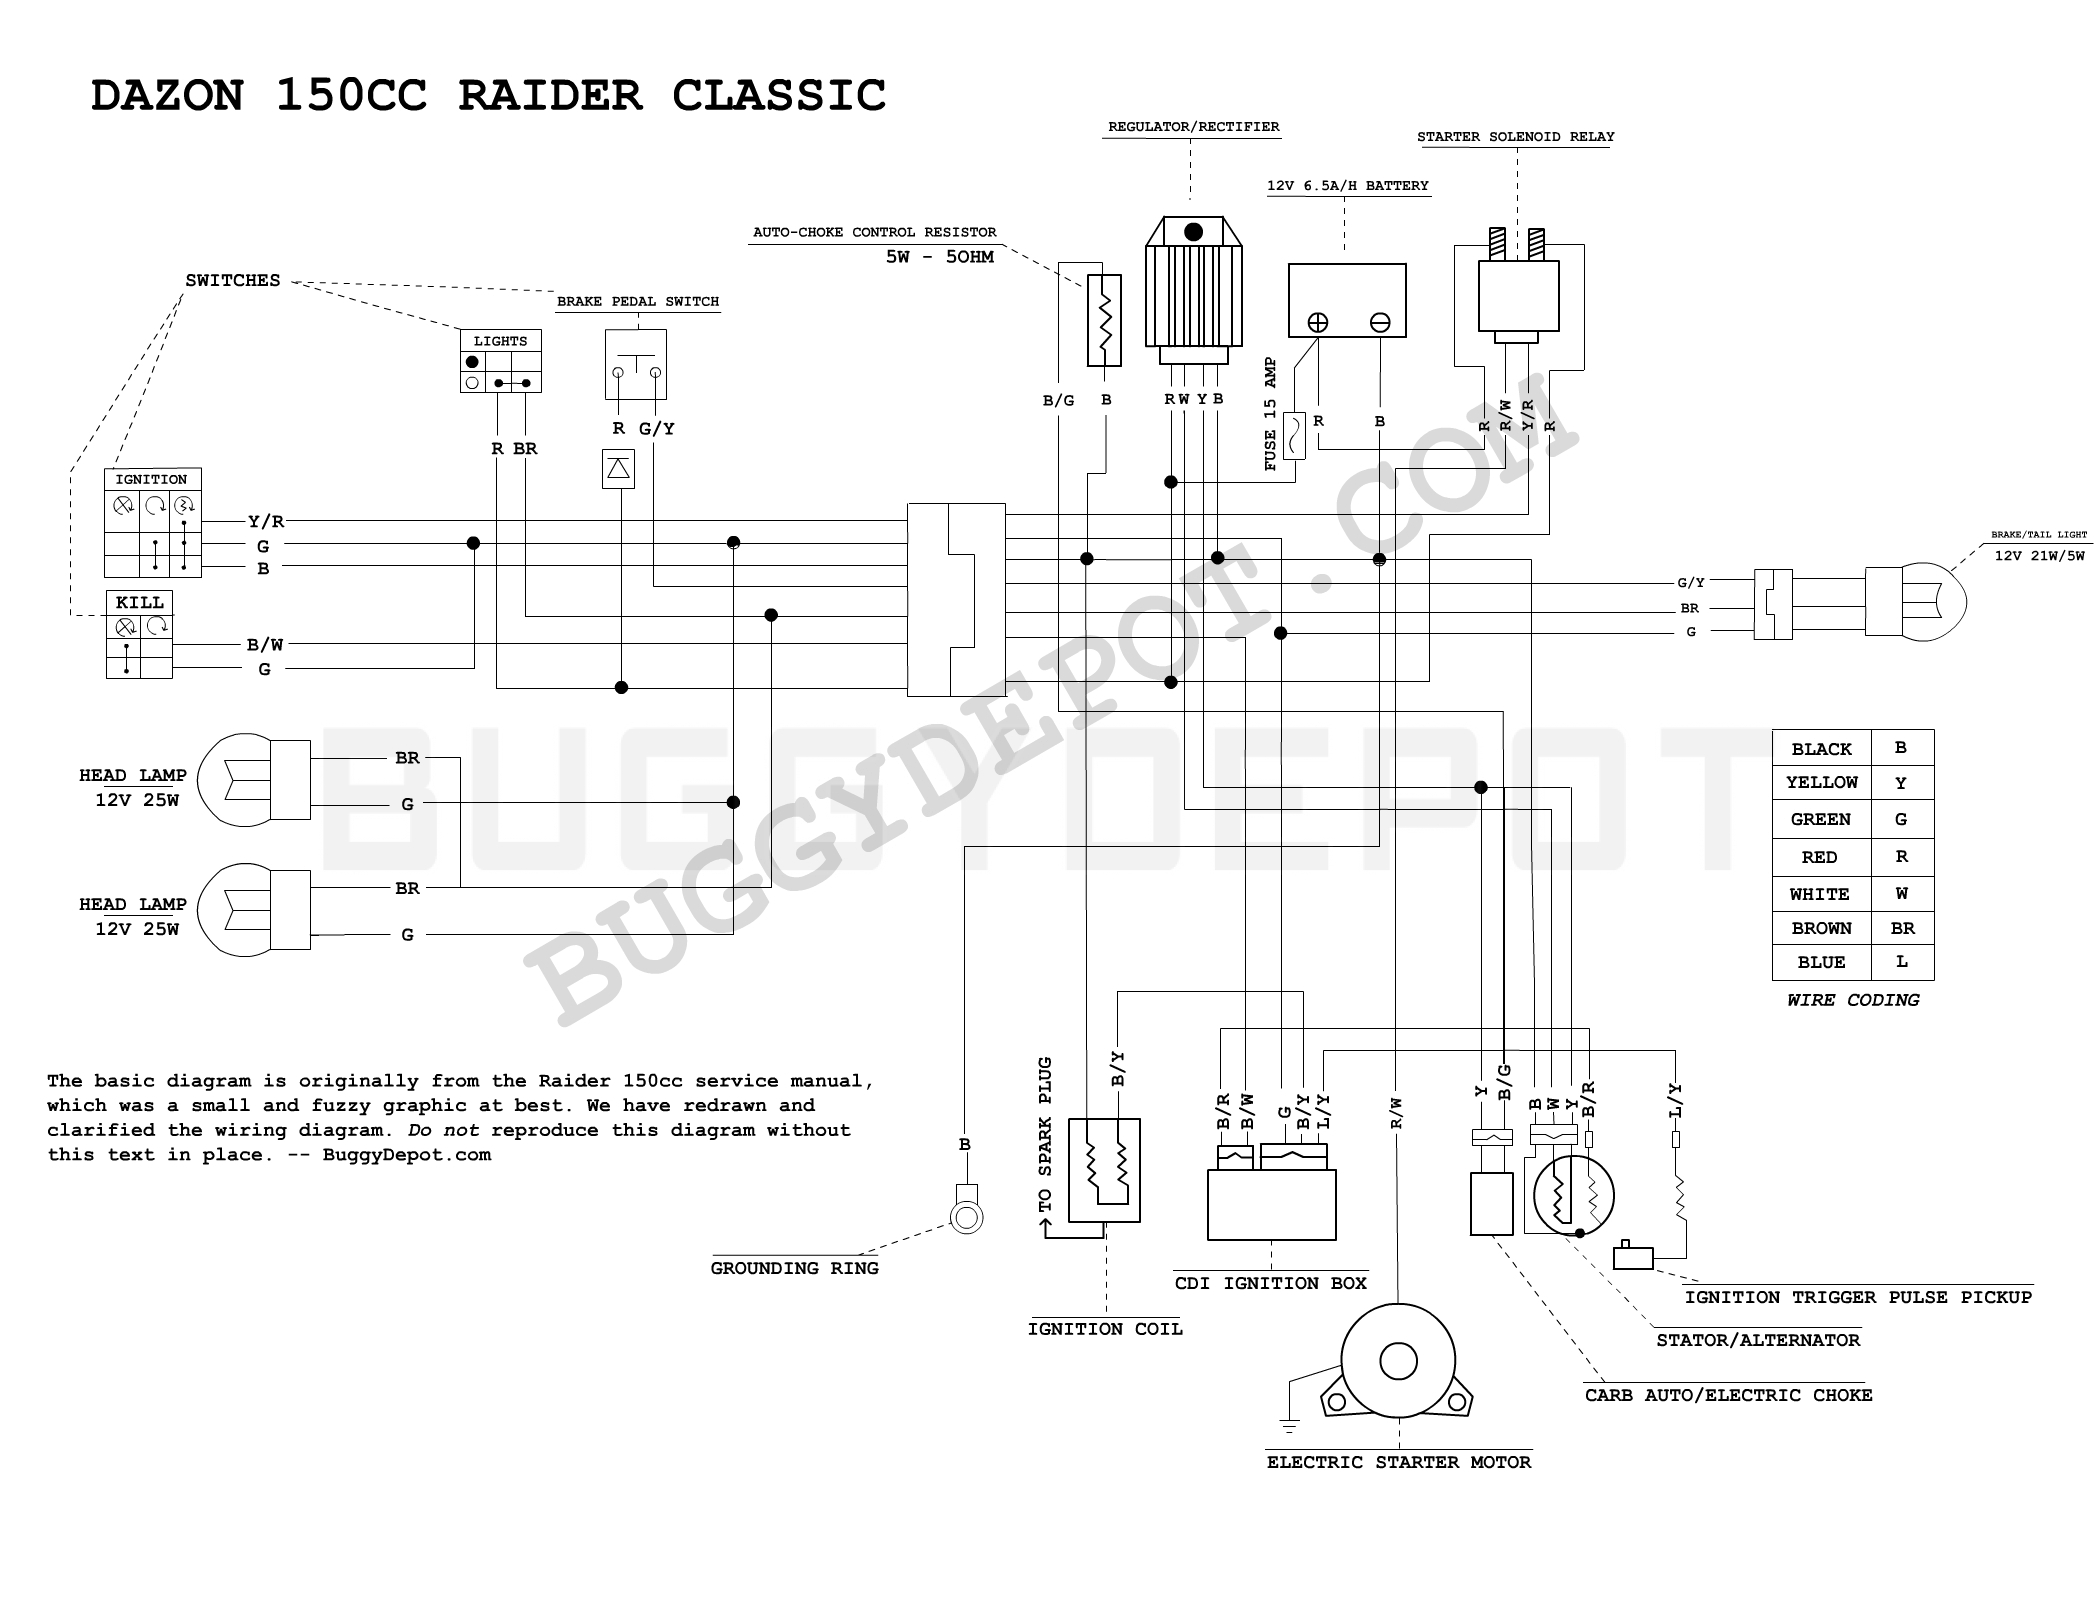 Tao Power Max 150 Wiring Diagram Reinvent Your For 49cc Gy6 150cc Ignition Troubleshooting Guide No Spark Buggy Depot Rh Buggydepot Com 110 Atv Parts Electric Scooter Diagrams